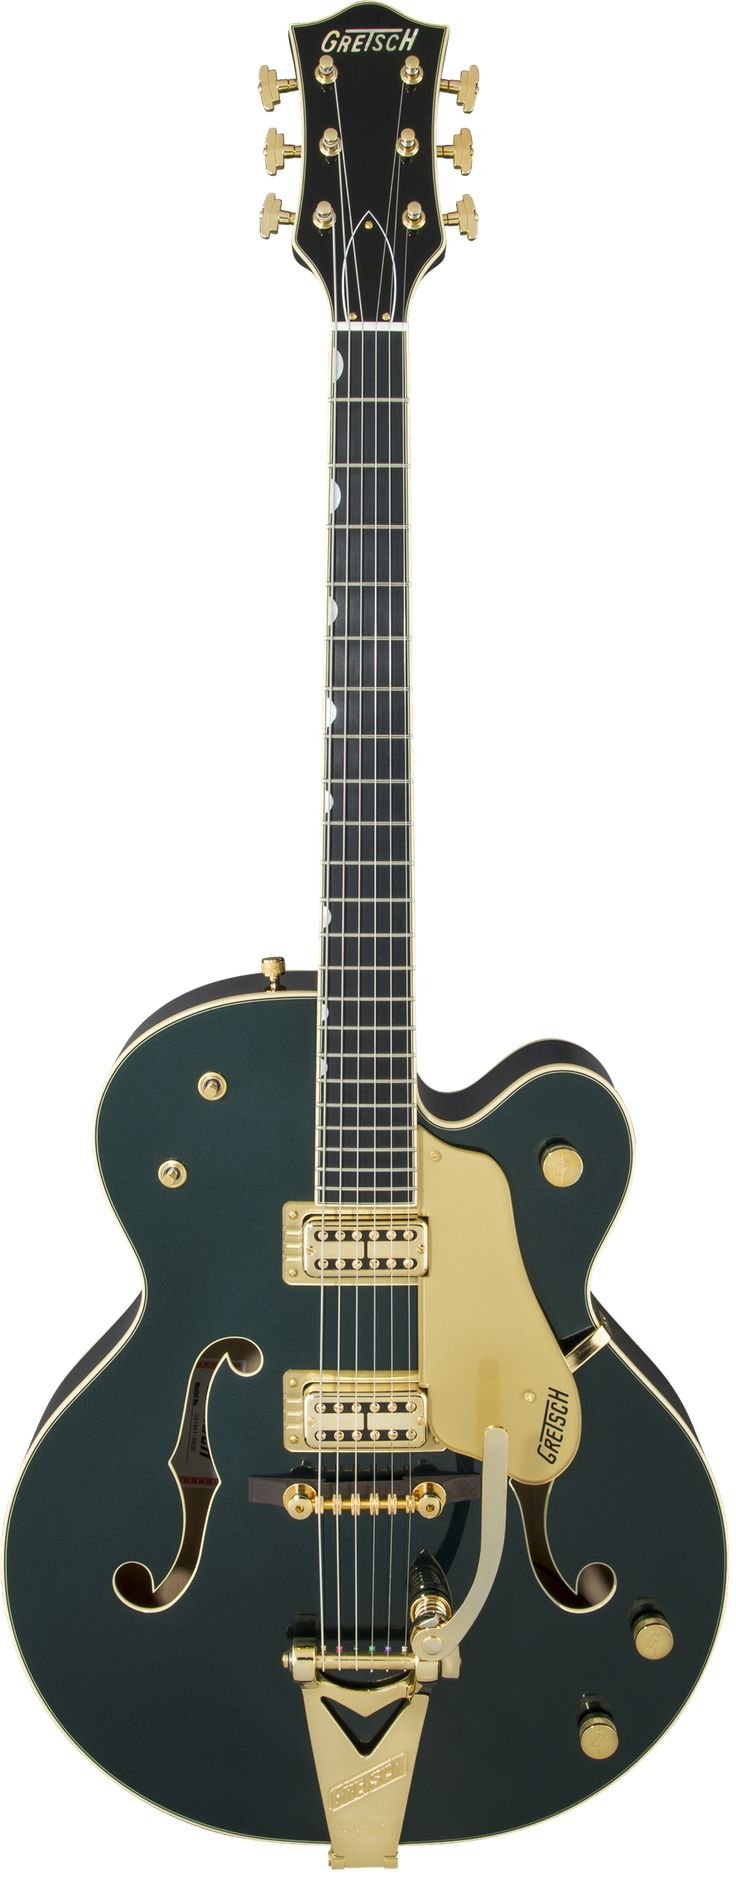 Gretsch Vintage Select Edition '59 Country Club